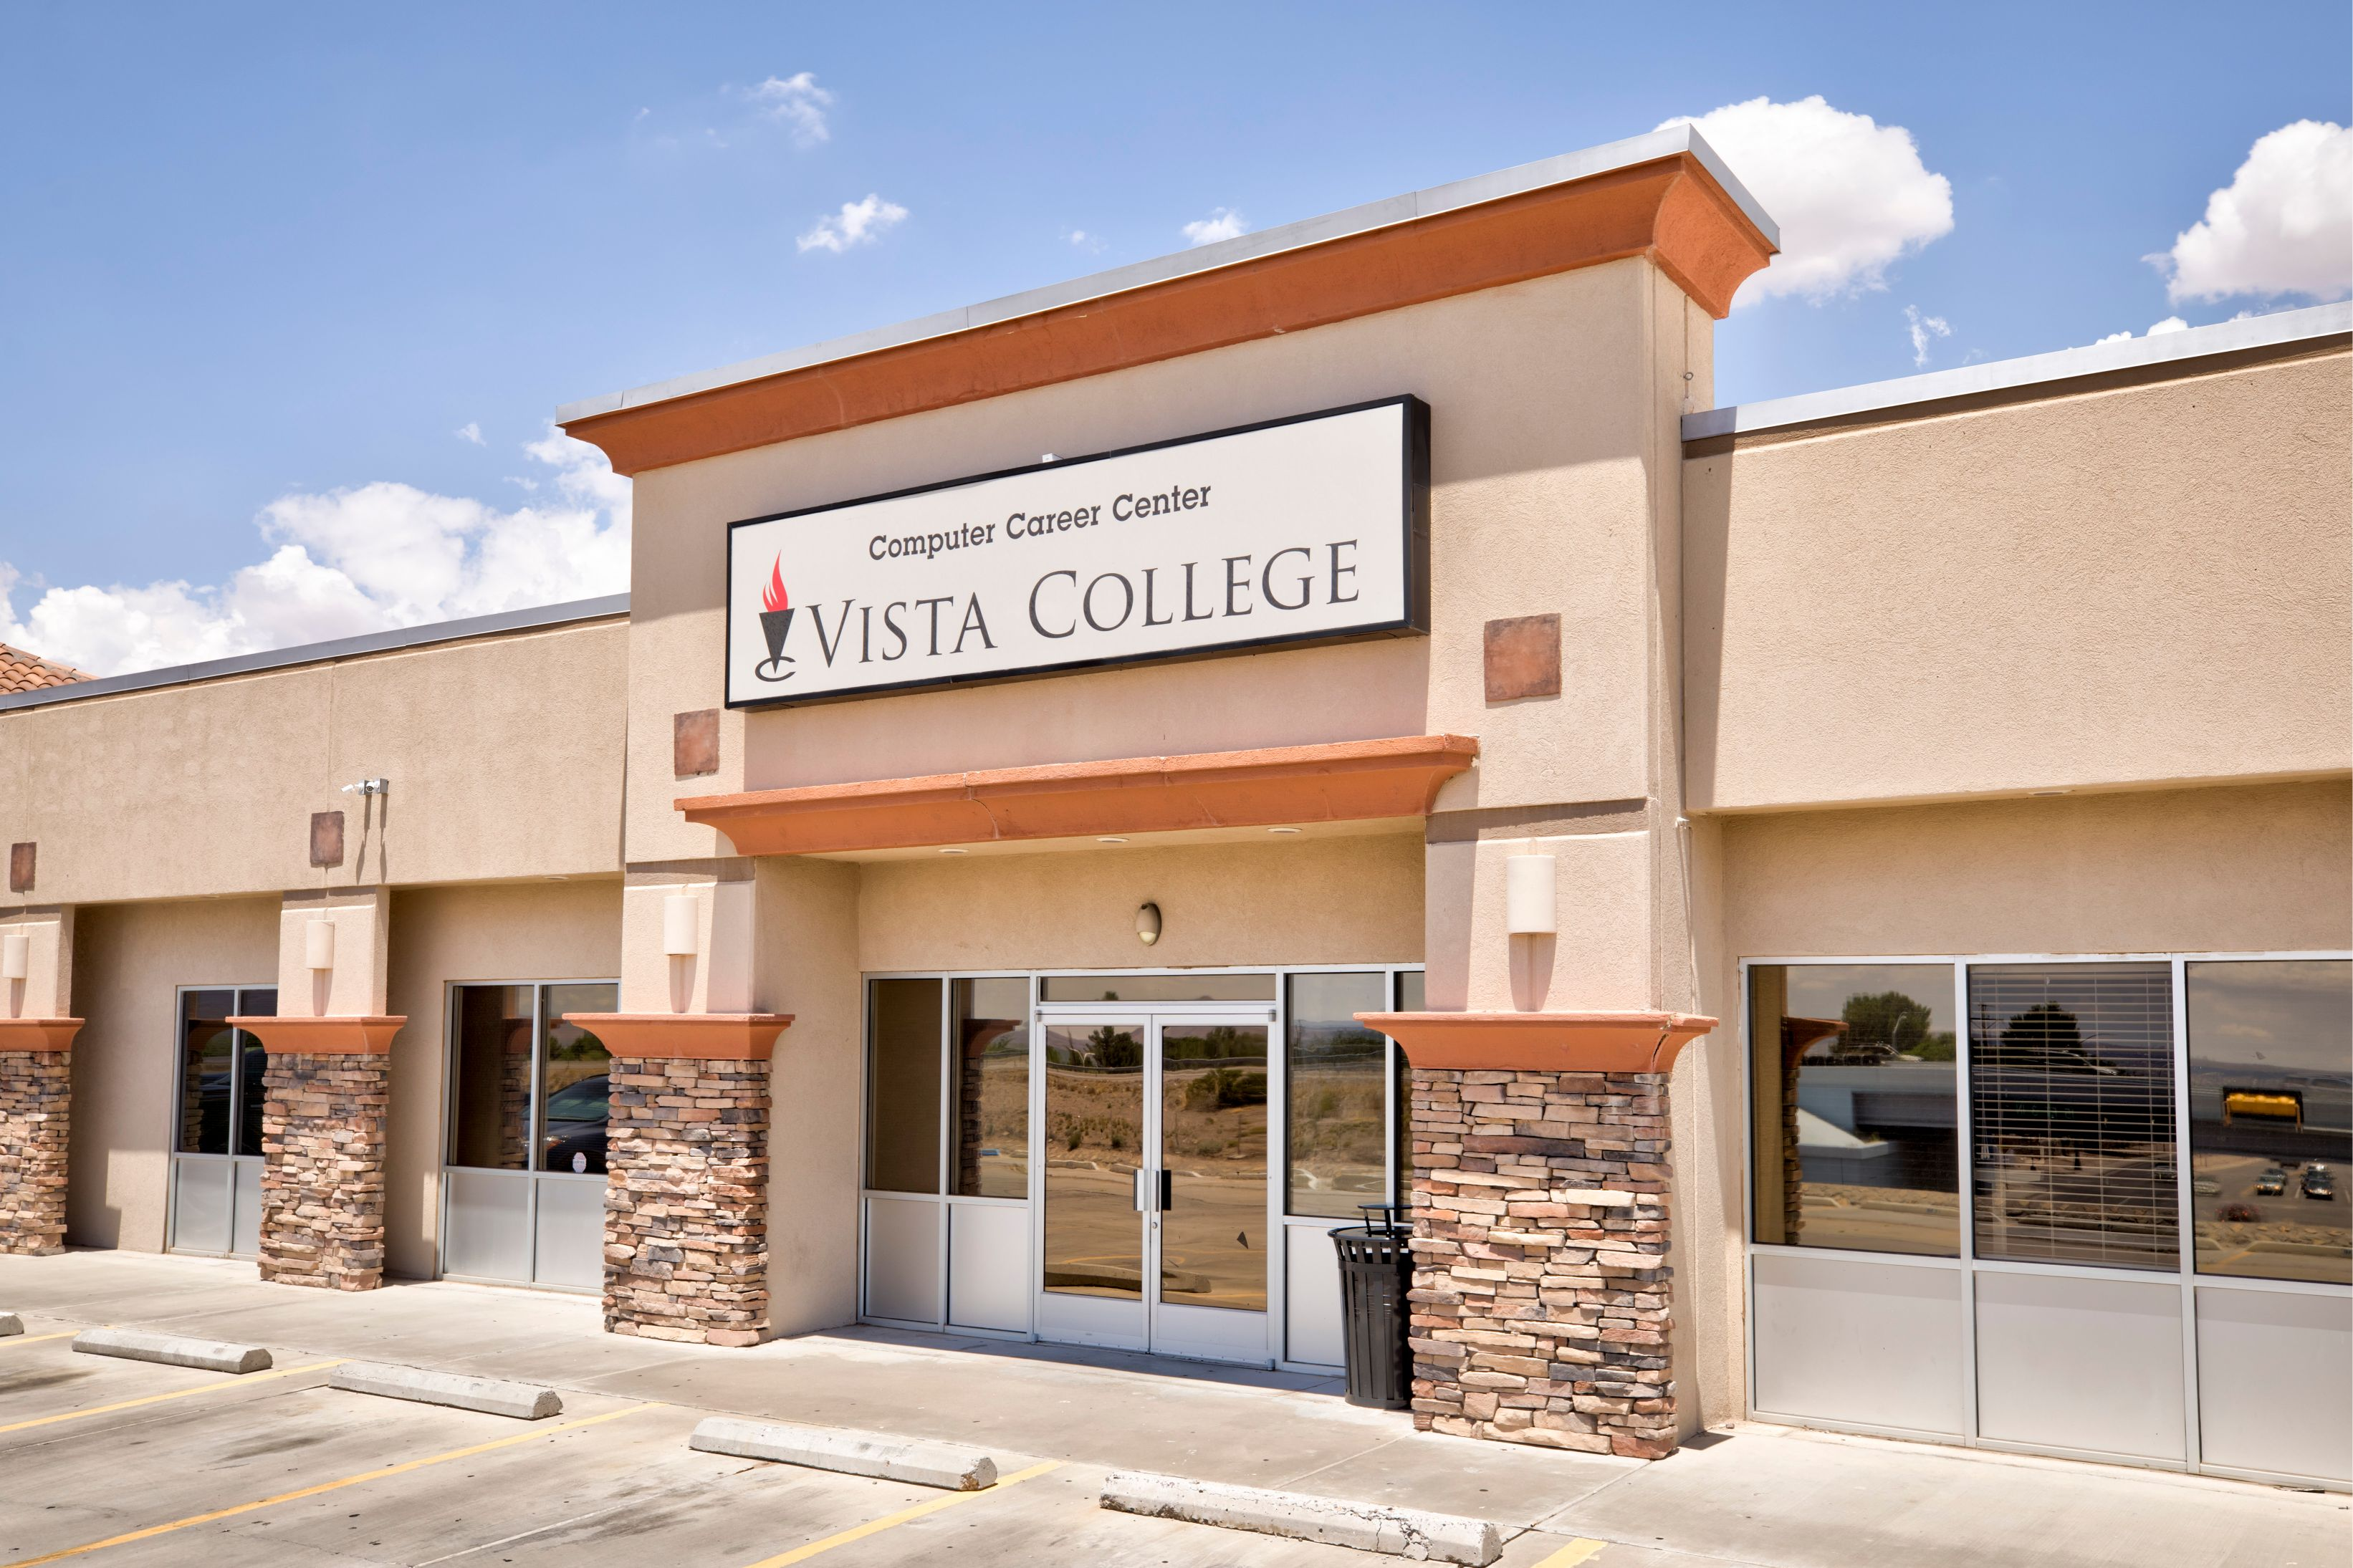 Computer Career Center a Division of Vista College image 0